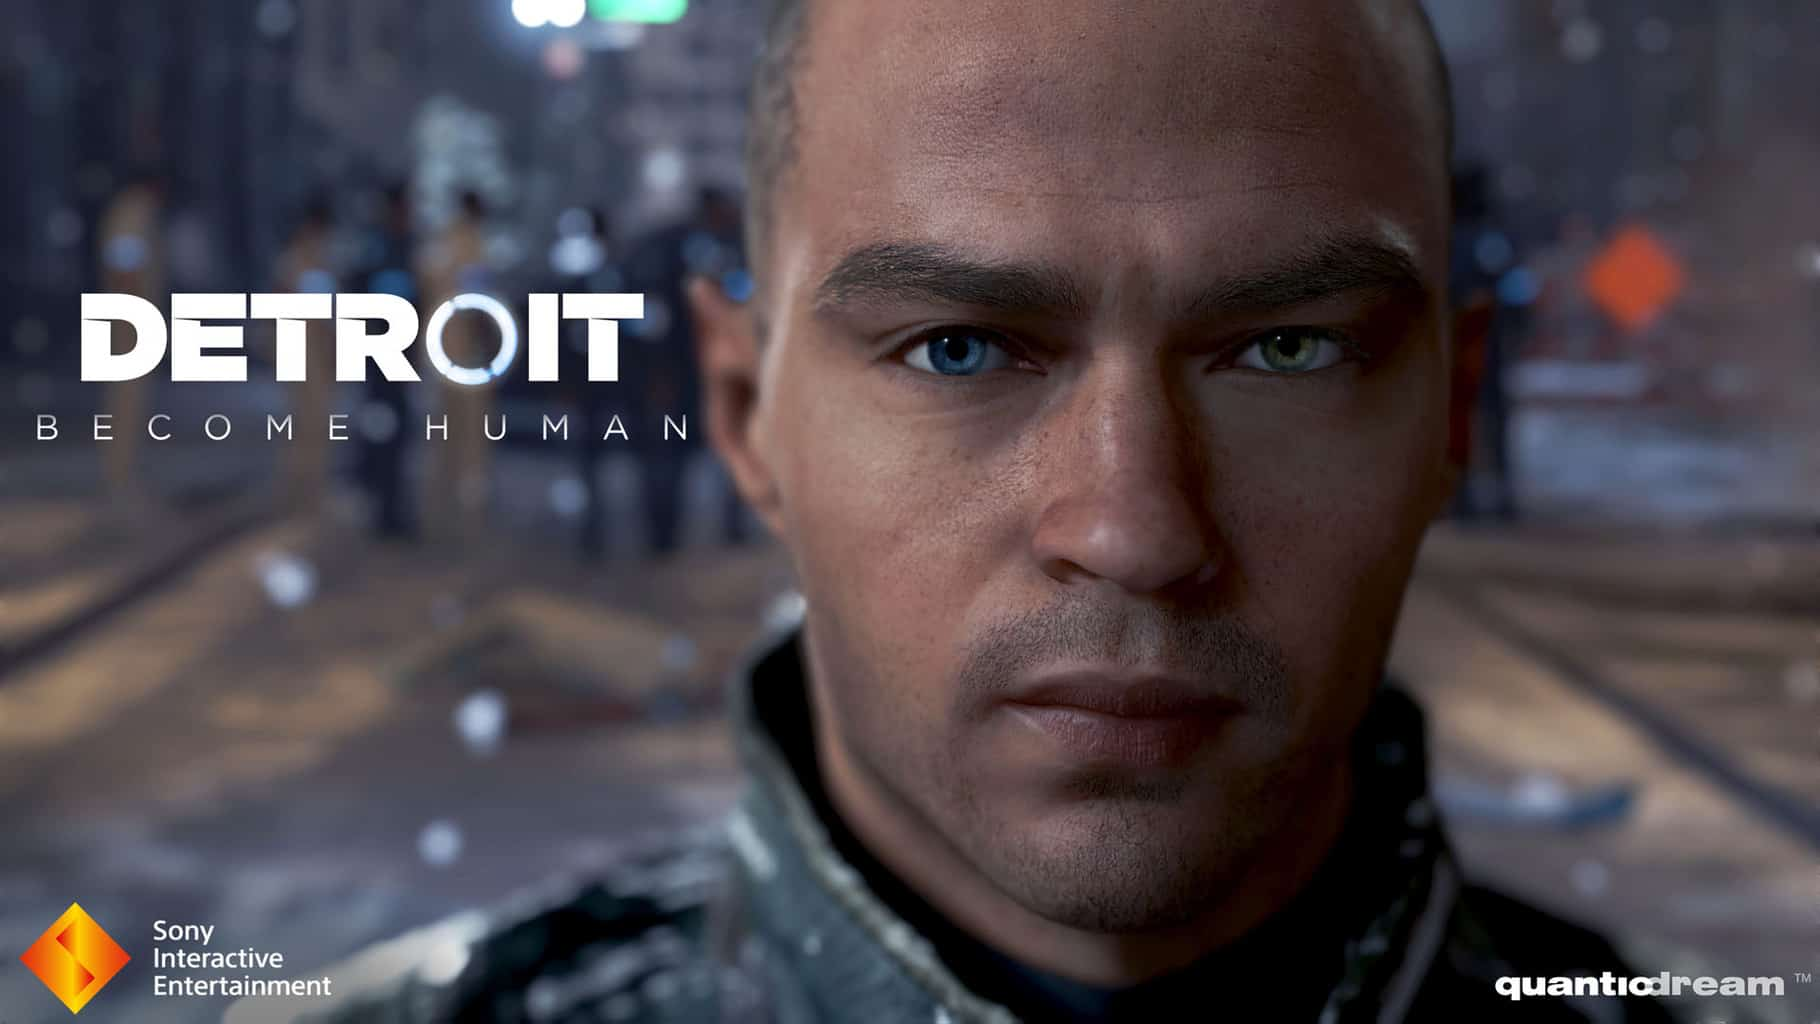 Supernatural Iphone Wallpaper Detroit Become Human Gets Release Date And New Cast